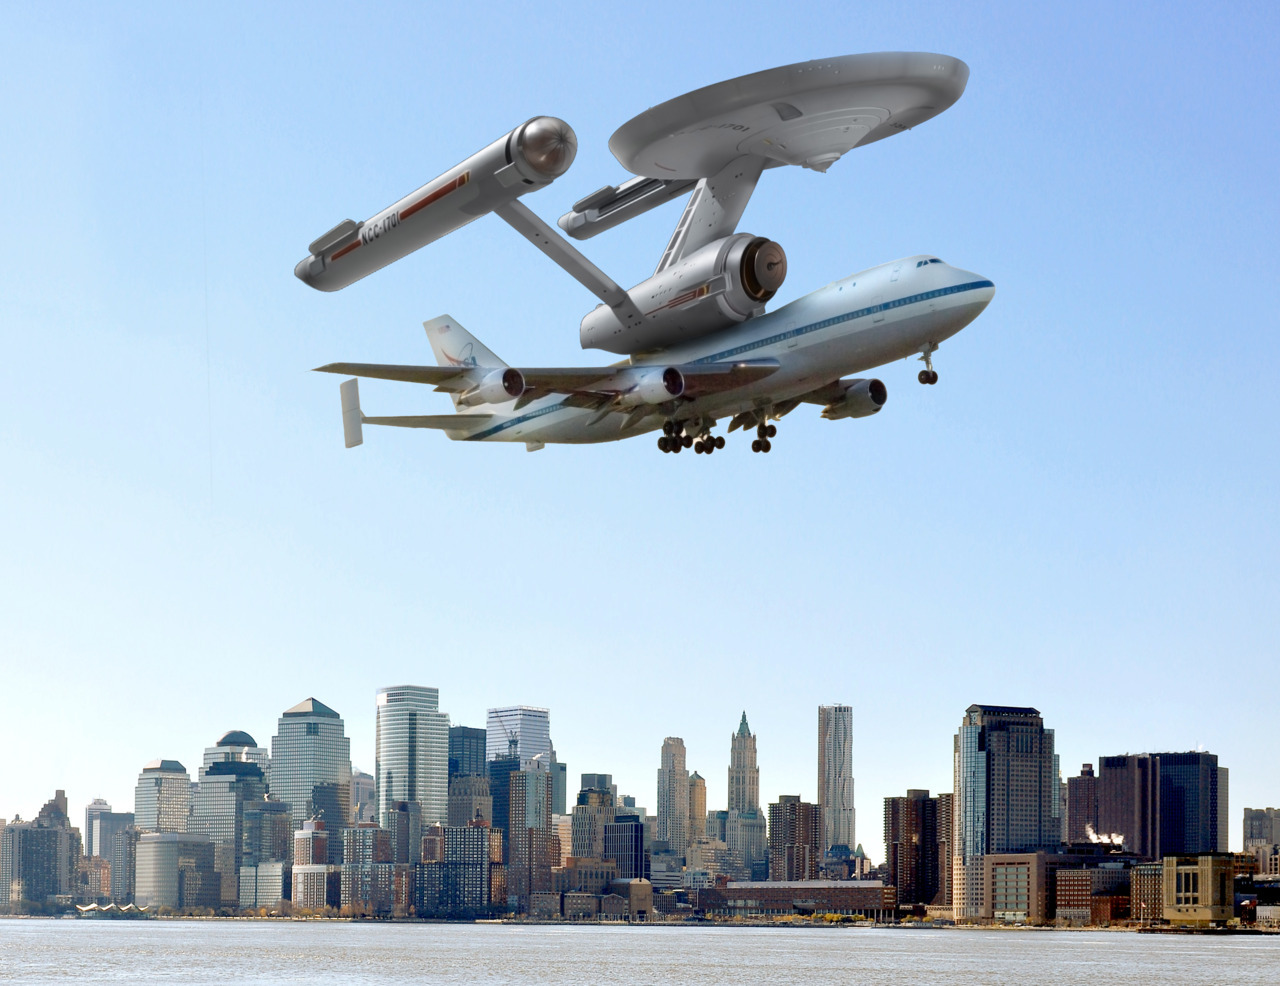 ex-genius:  NEWS: Space Shuttle Enterprise completes historic flyover of New York City on the back of a modified 747 before delivery to the intrepid museum. This is totally an actual photograph of what actually happened.   Ok, scratch the photos I had up earlier and the dozens more floating around. This wins everything.